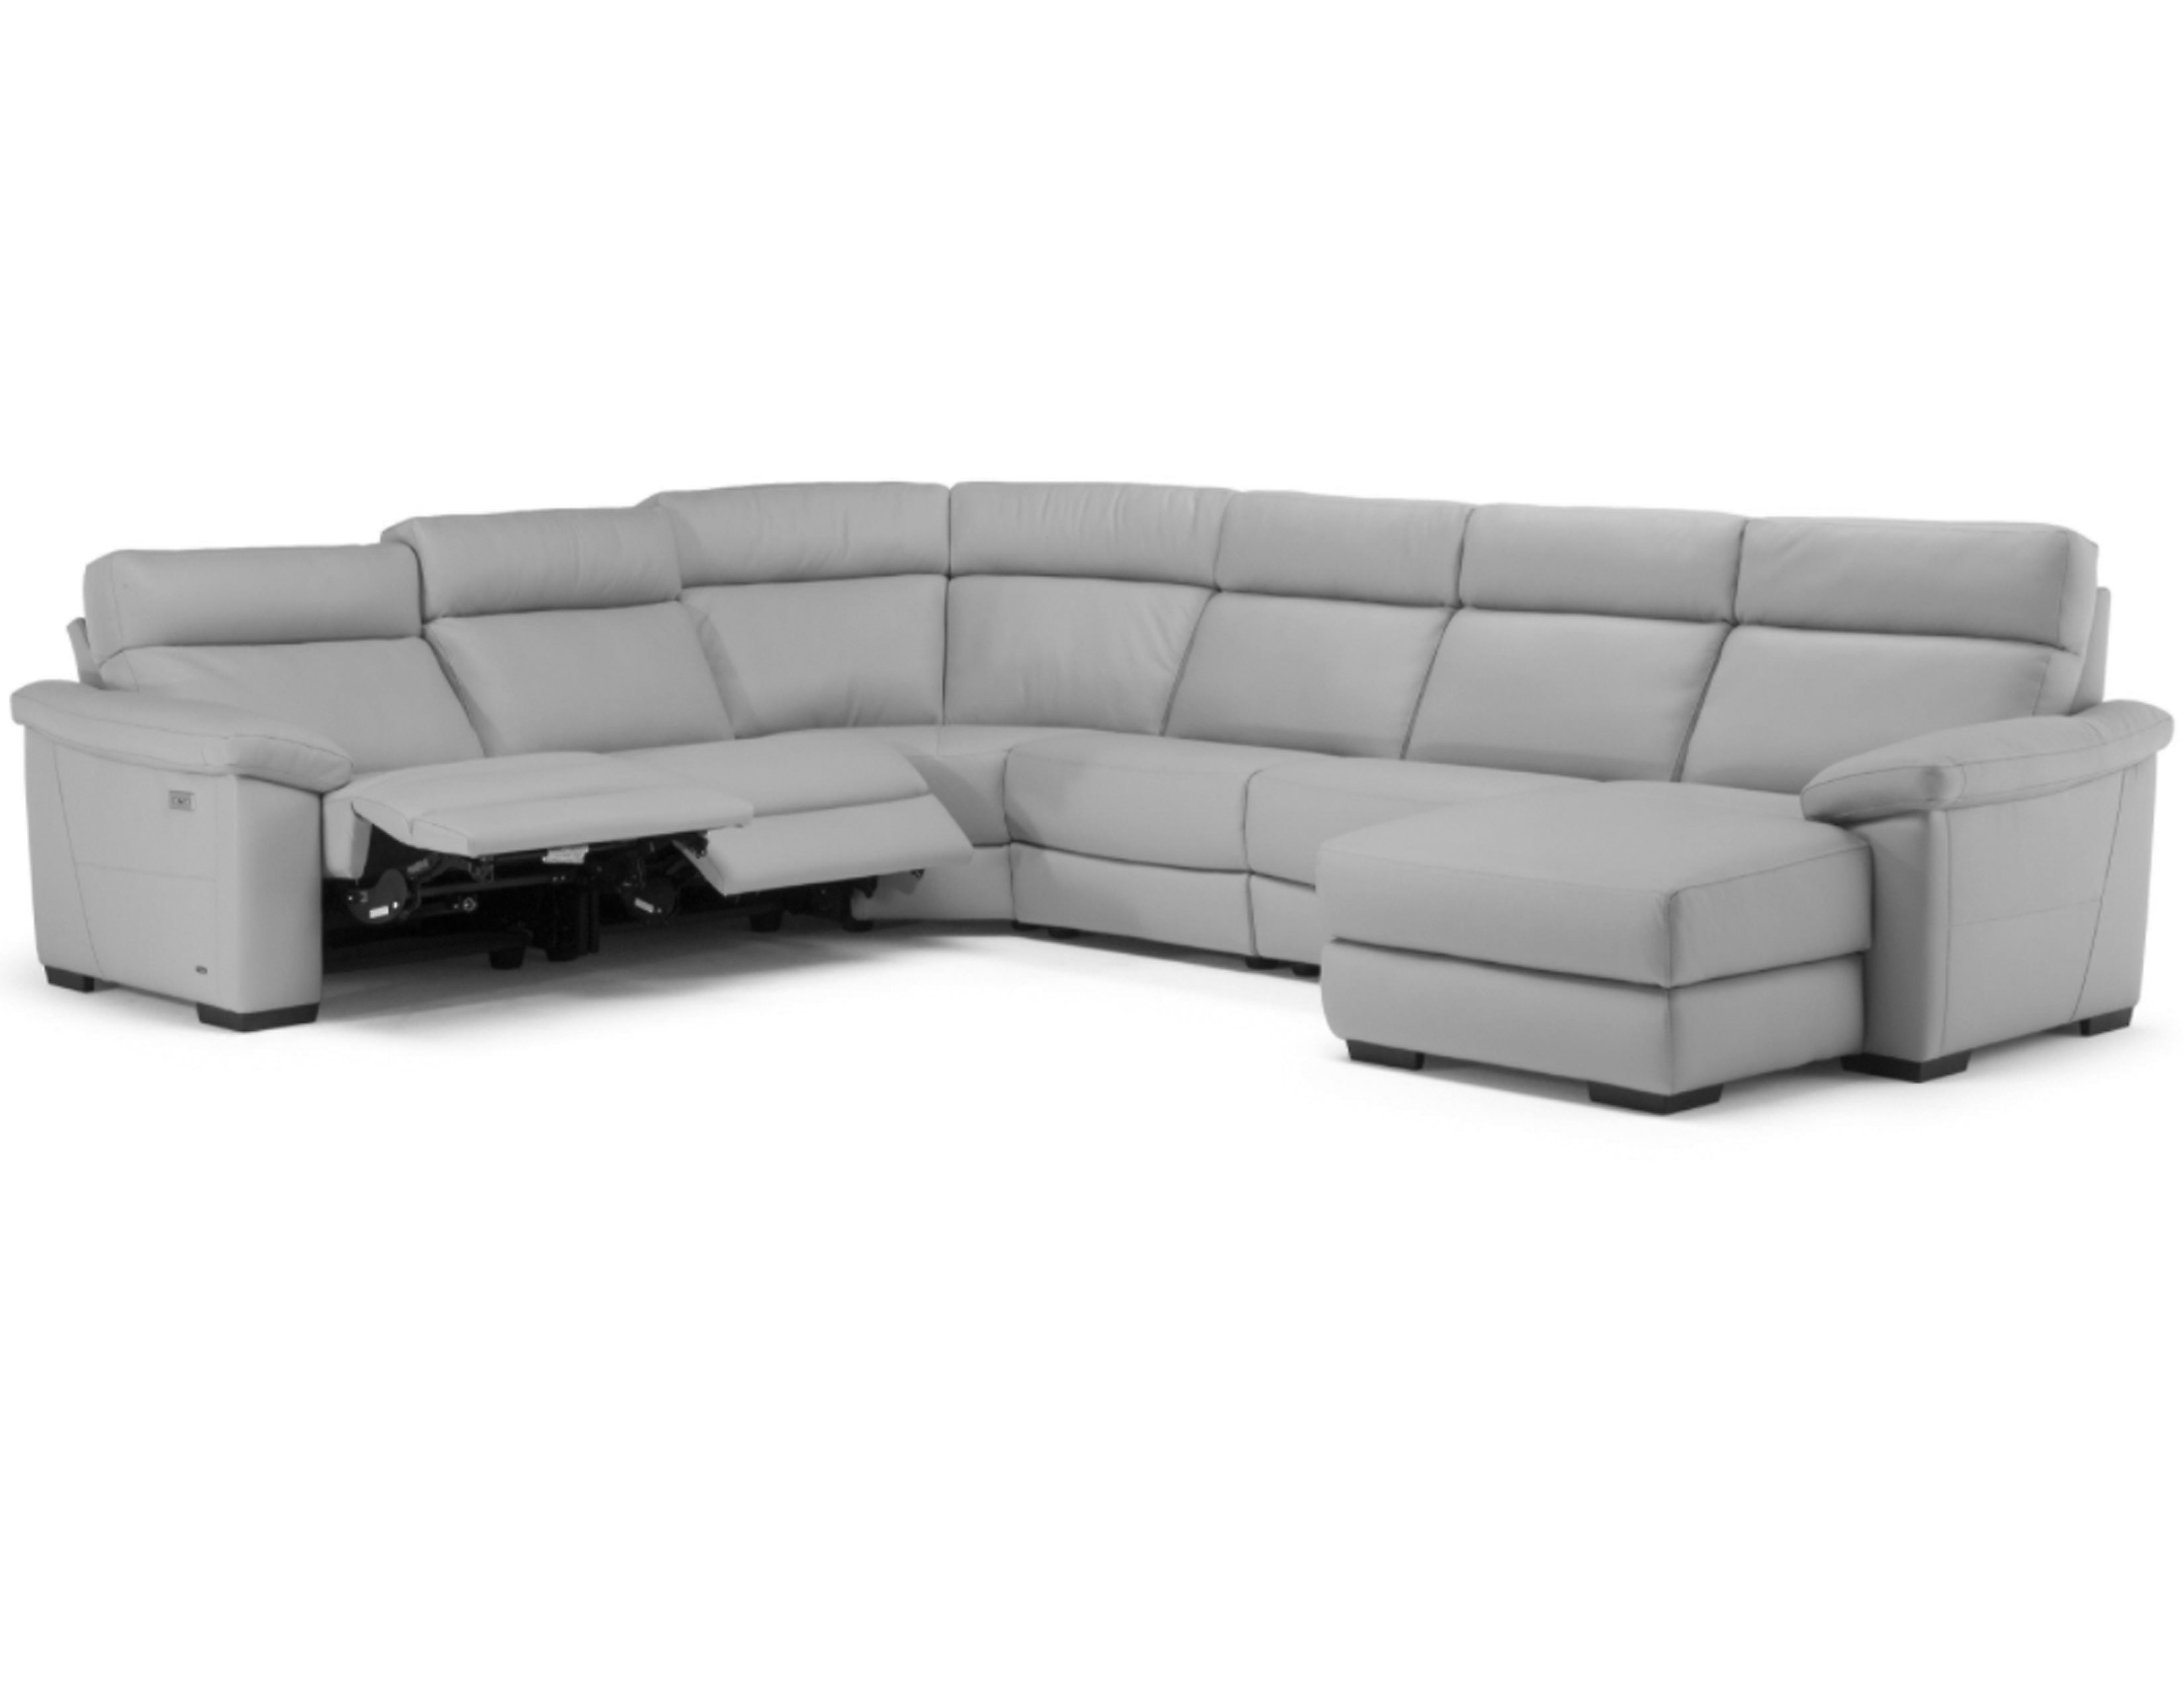 Picture of: Estremo C126 Fabric Power Headrest Power Sofas And Sectionals